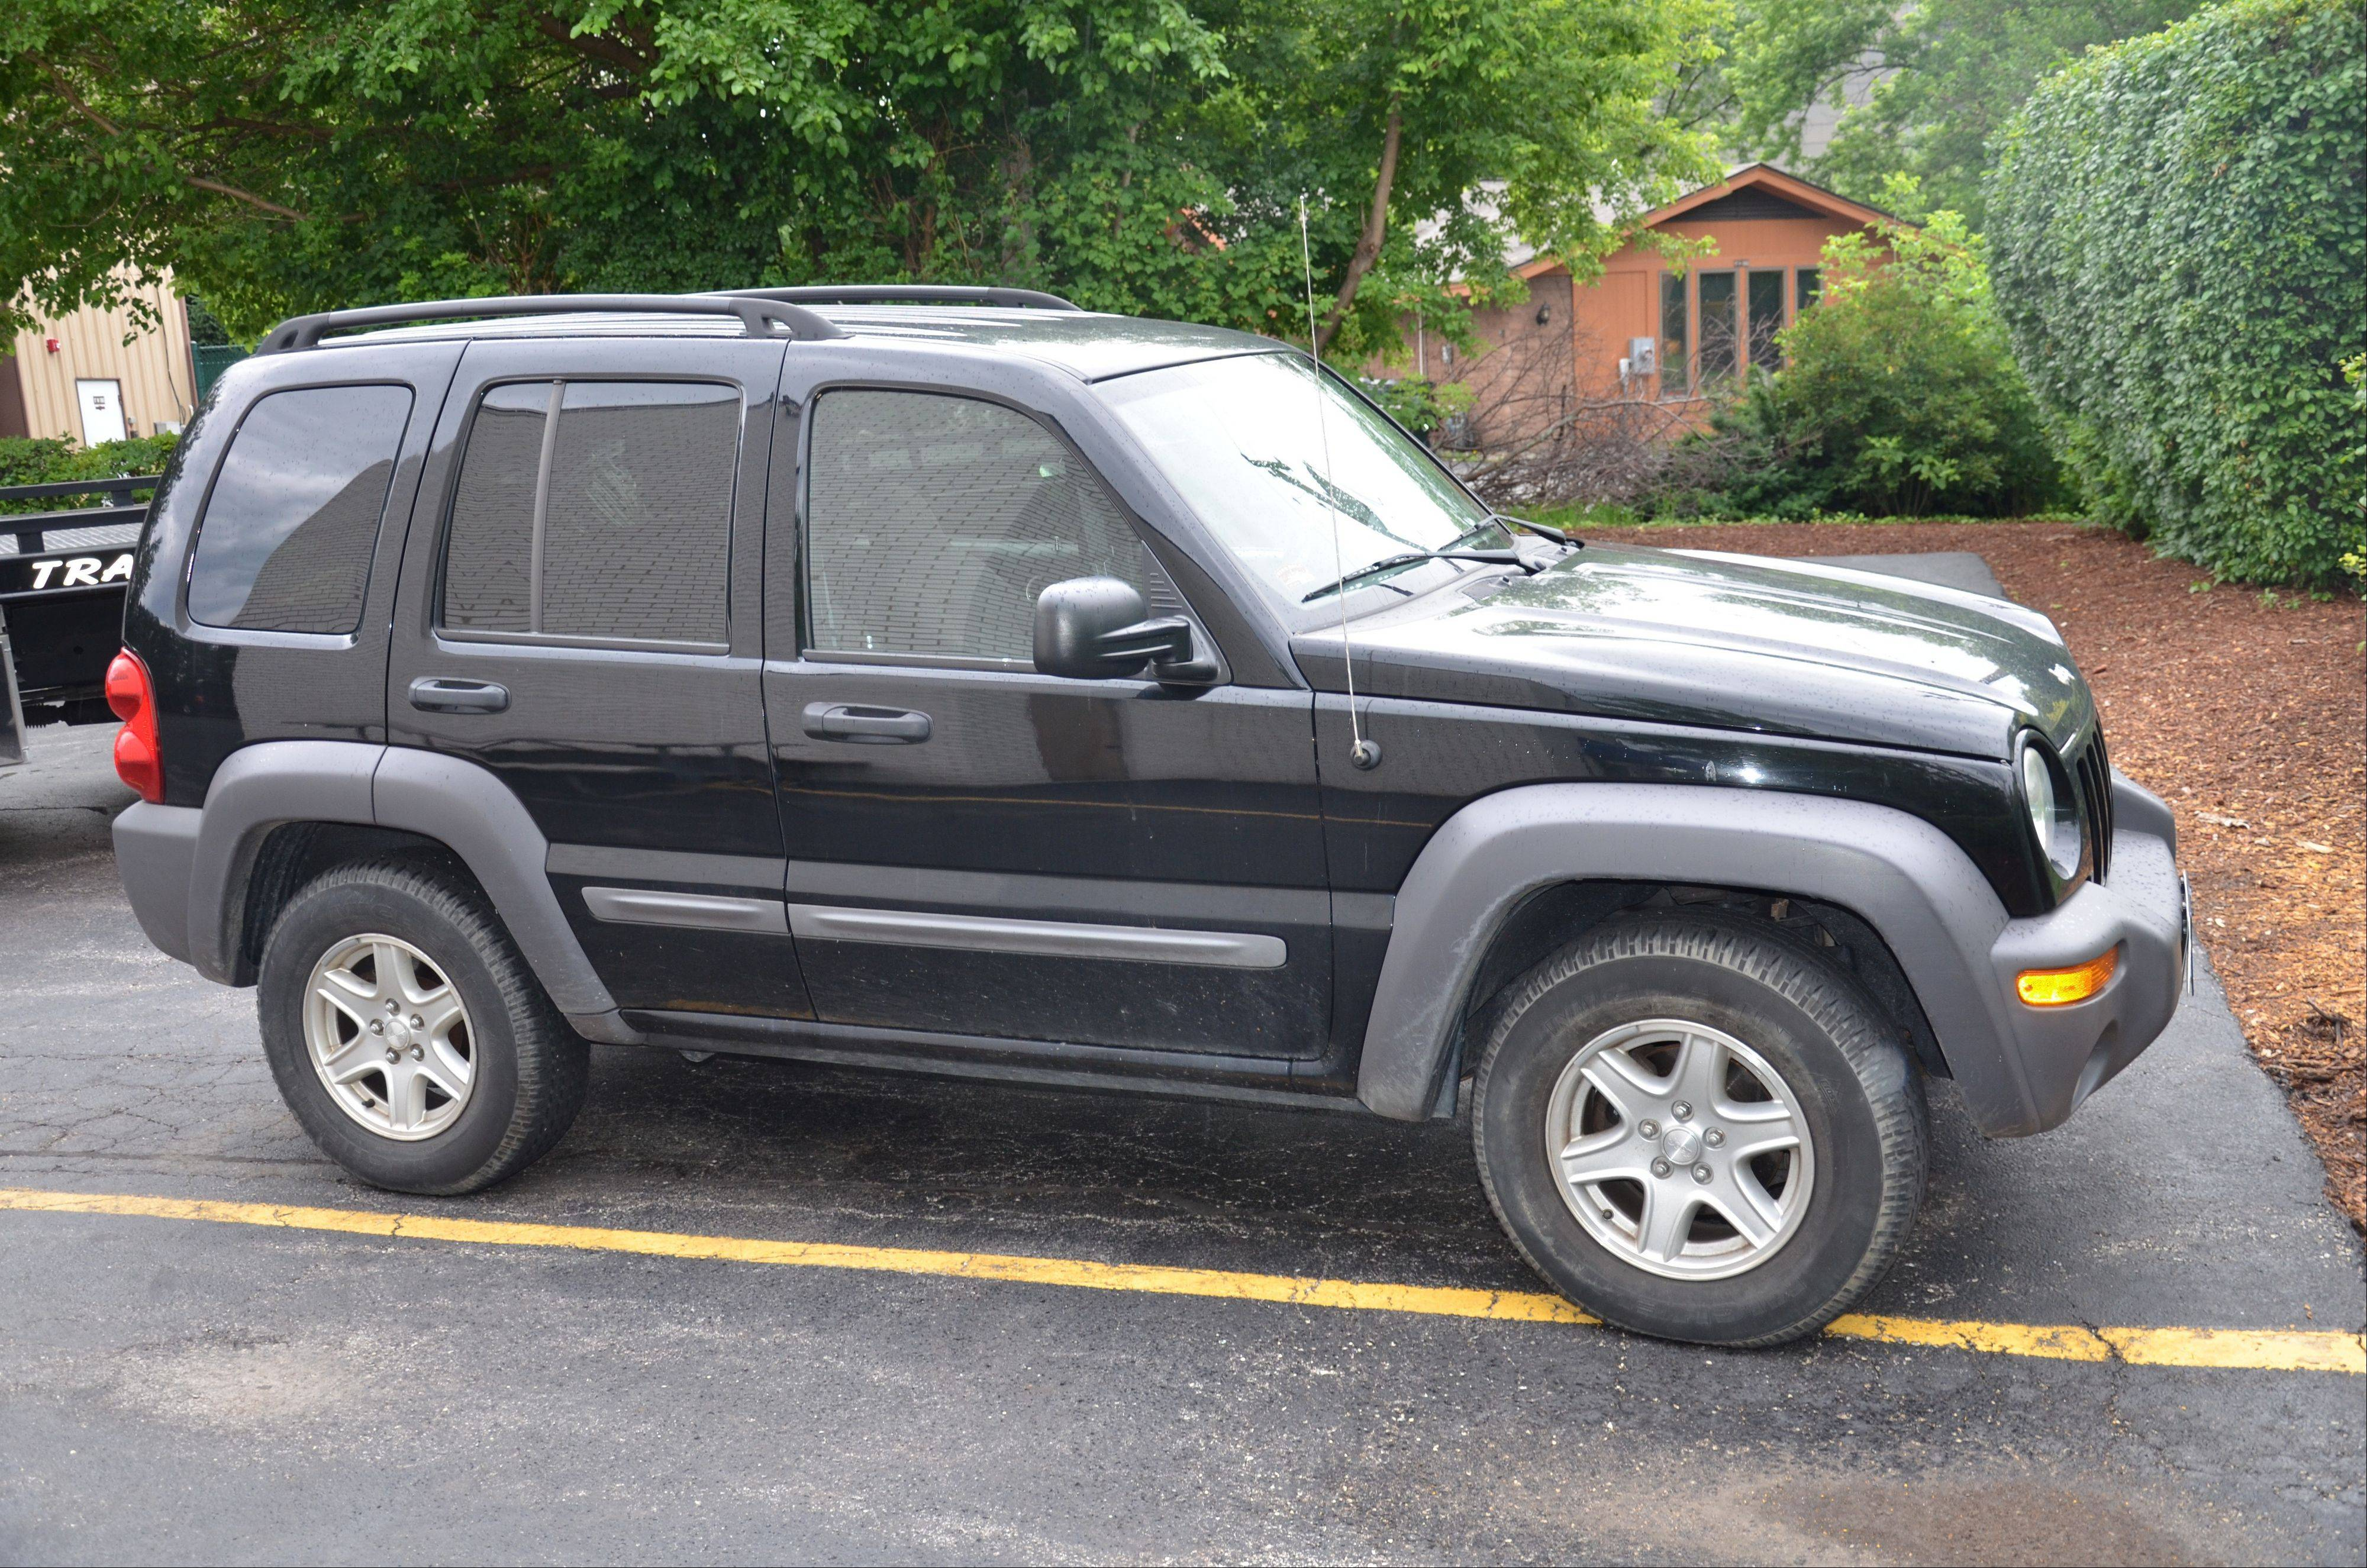 Police believe this Jeep Liberty was stolen in June by three men who tried to rob a jewelry store at Oakbrook Center mall in Oak Brook. Police found the vehicle abandoned less than a half-mile from the mall the following morning.